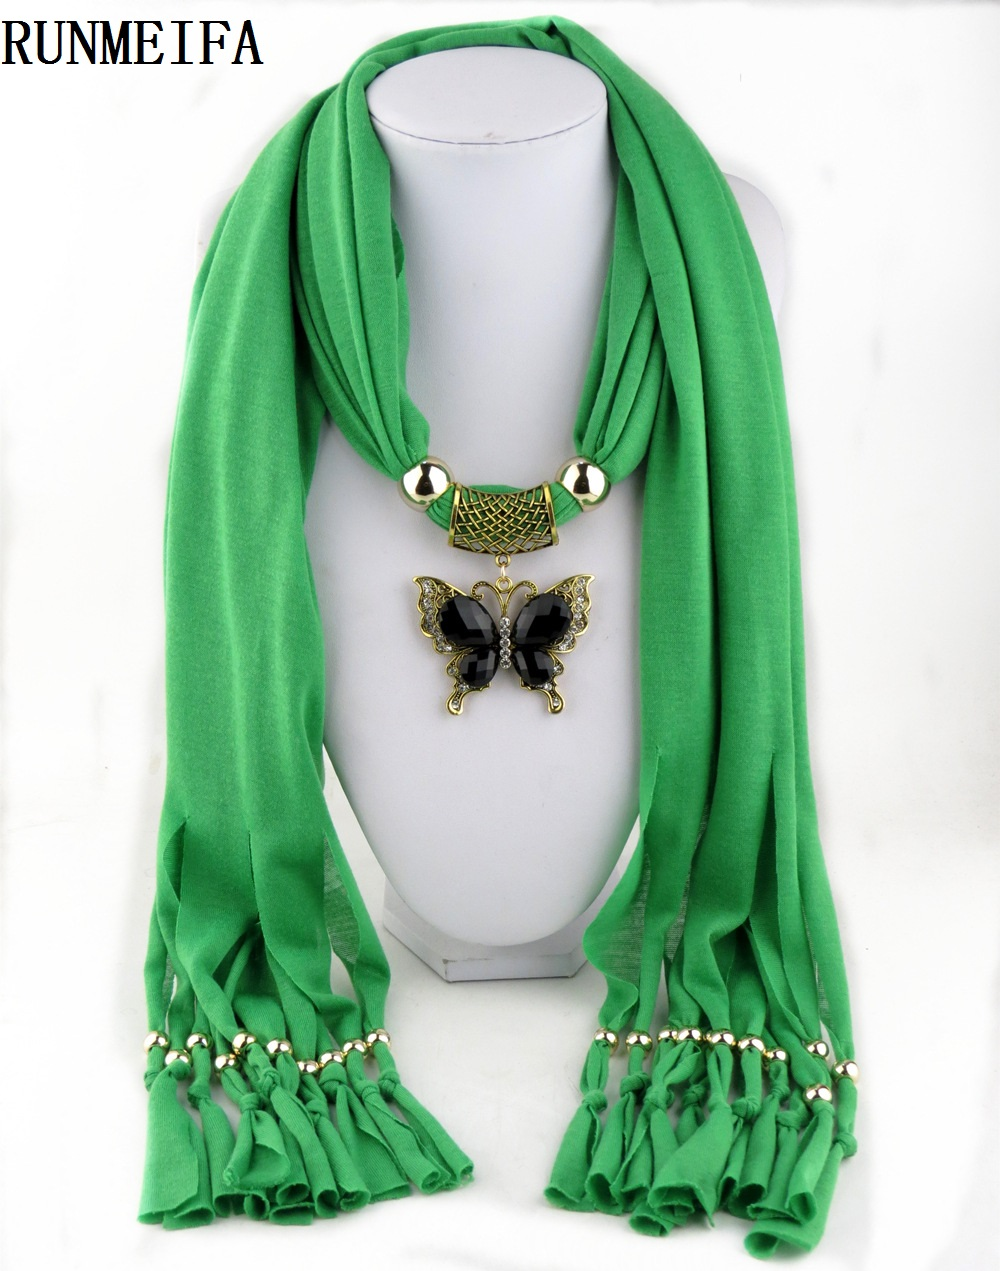 New arrival charms winter scarf necklaces tassel bead butterfly new arrival charms winter scarf necklaces tassel bead butterfly pendant scarf necklaces women scarf necklaces jewelry wholesale aloadofball Images